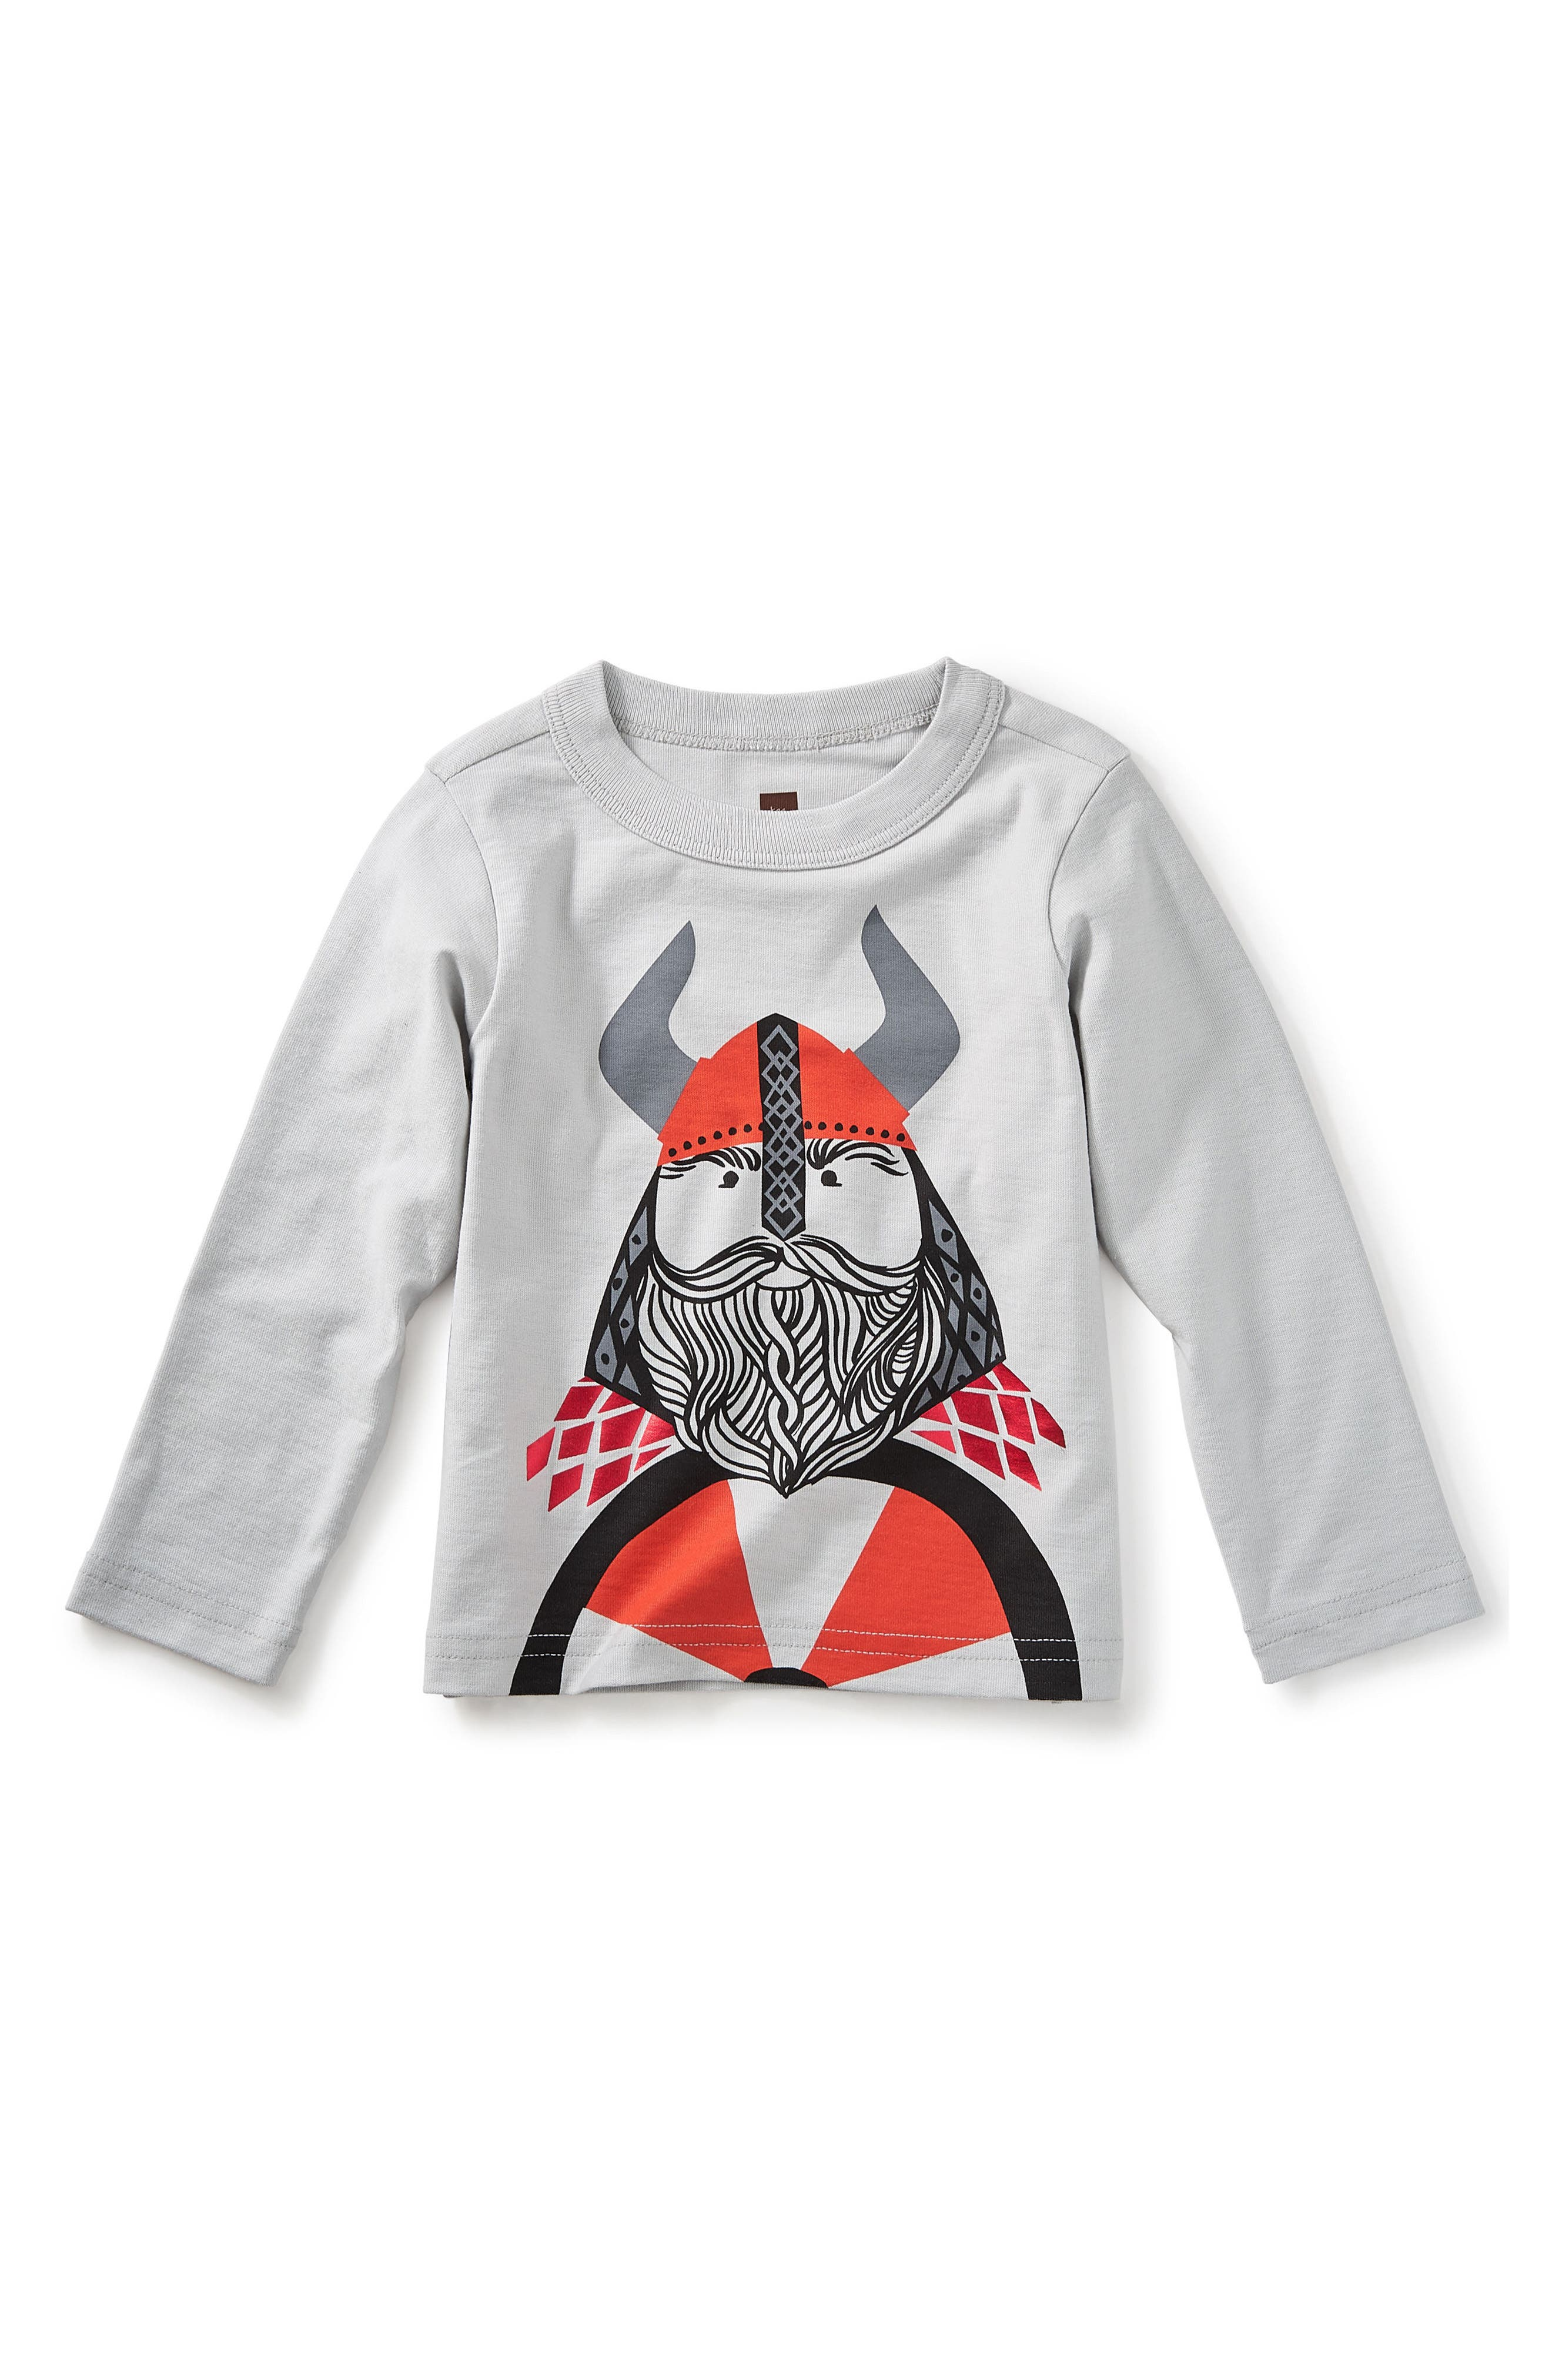 Little Viking Graphic T-Shirt,                         Main,                         color, 020